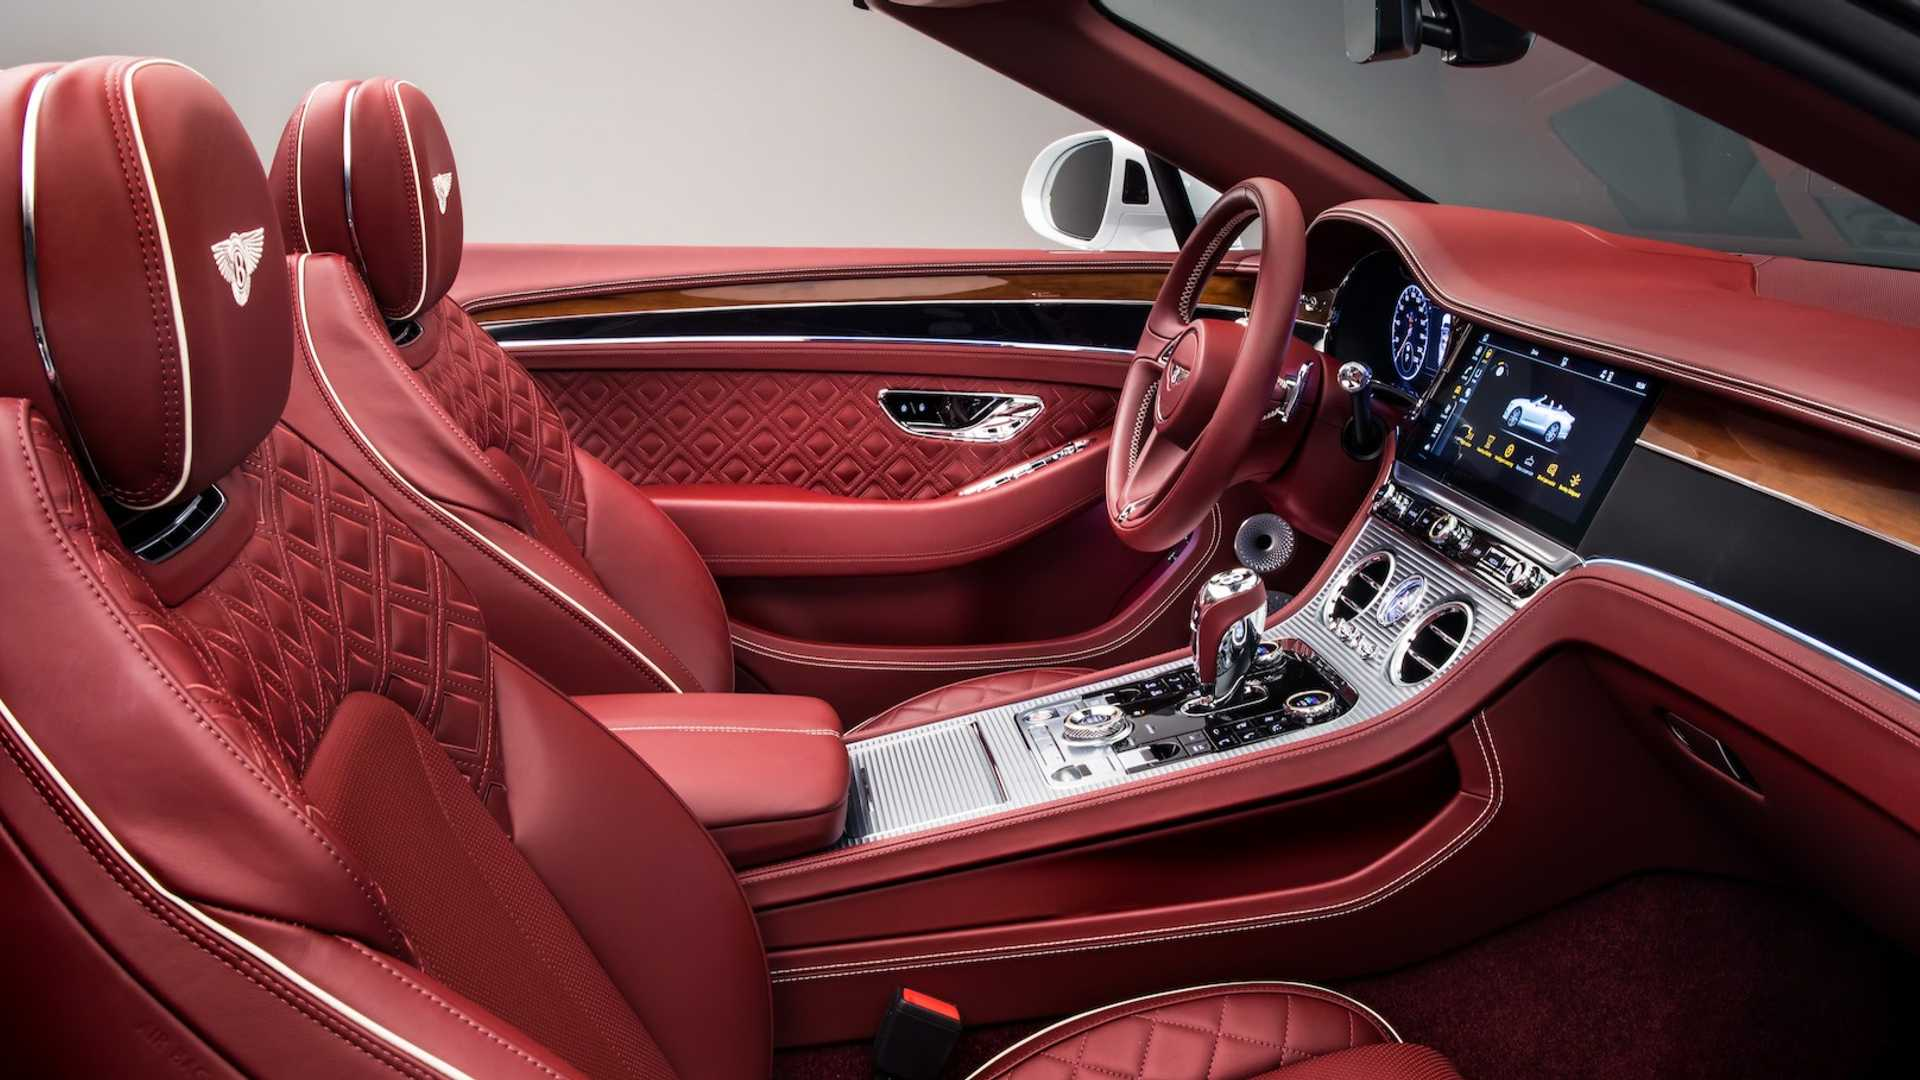 2019-bentley-continental-gt-convertible-unveiled-207-mph-luxury-droptop (22)